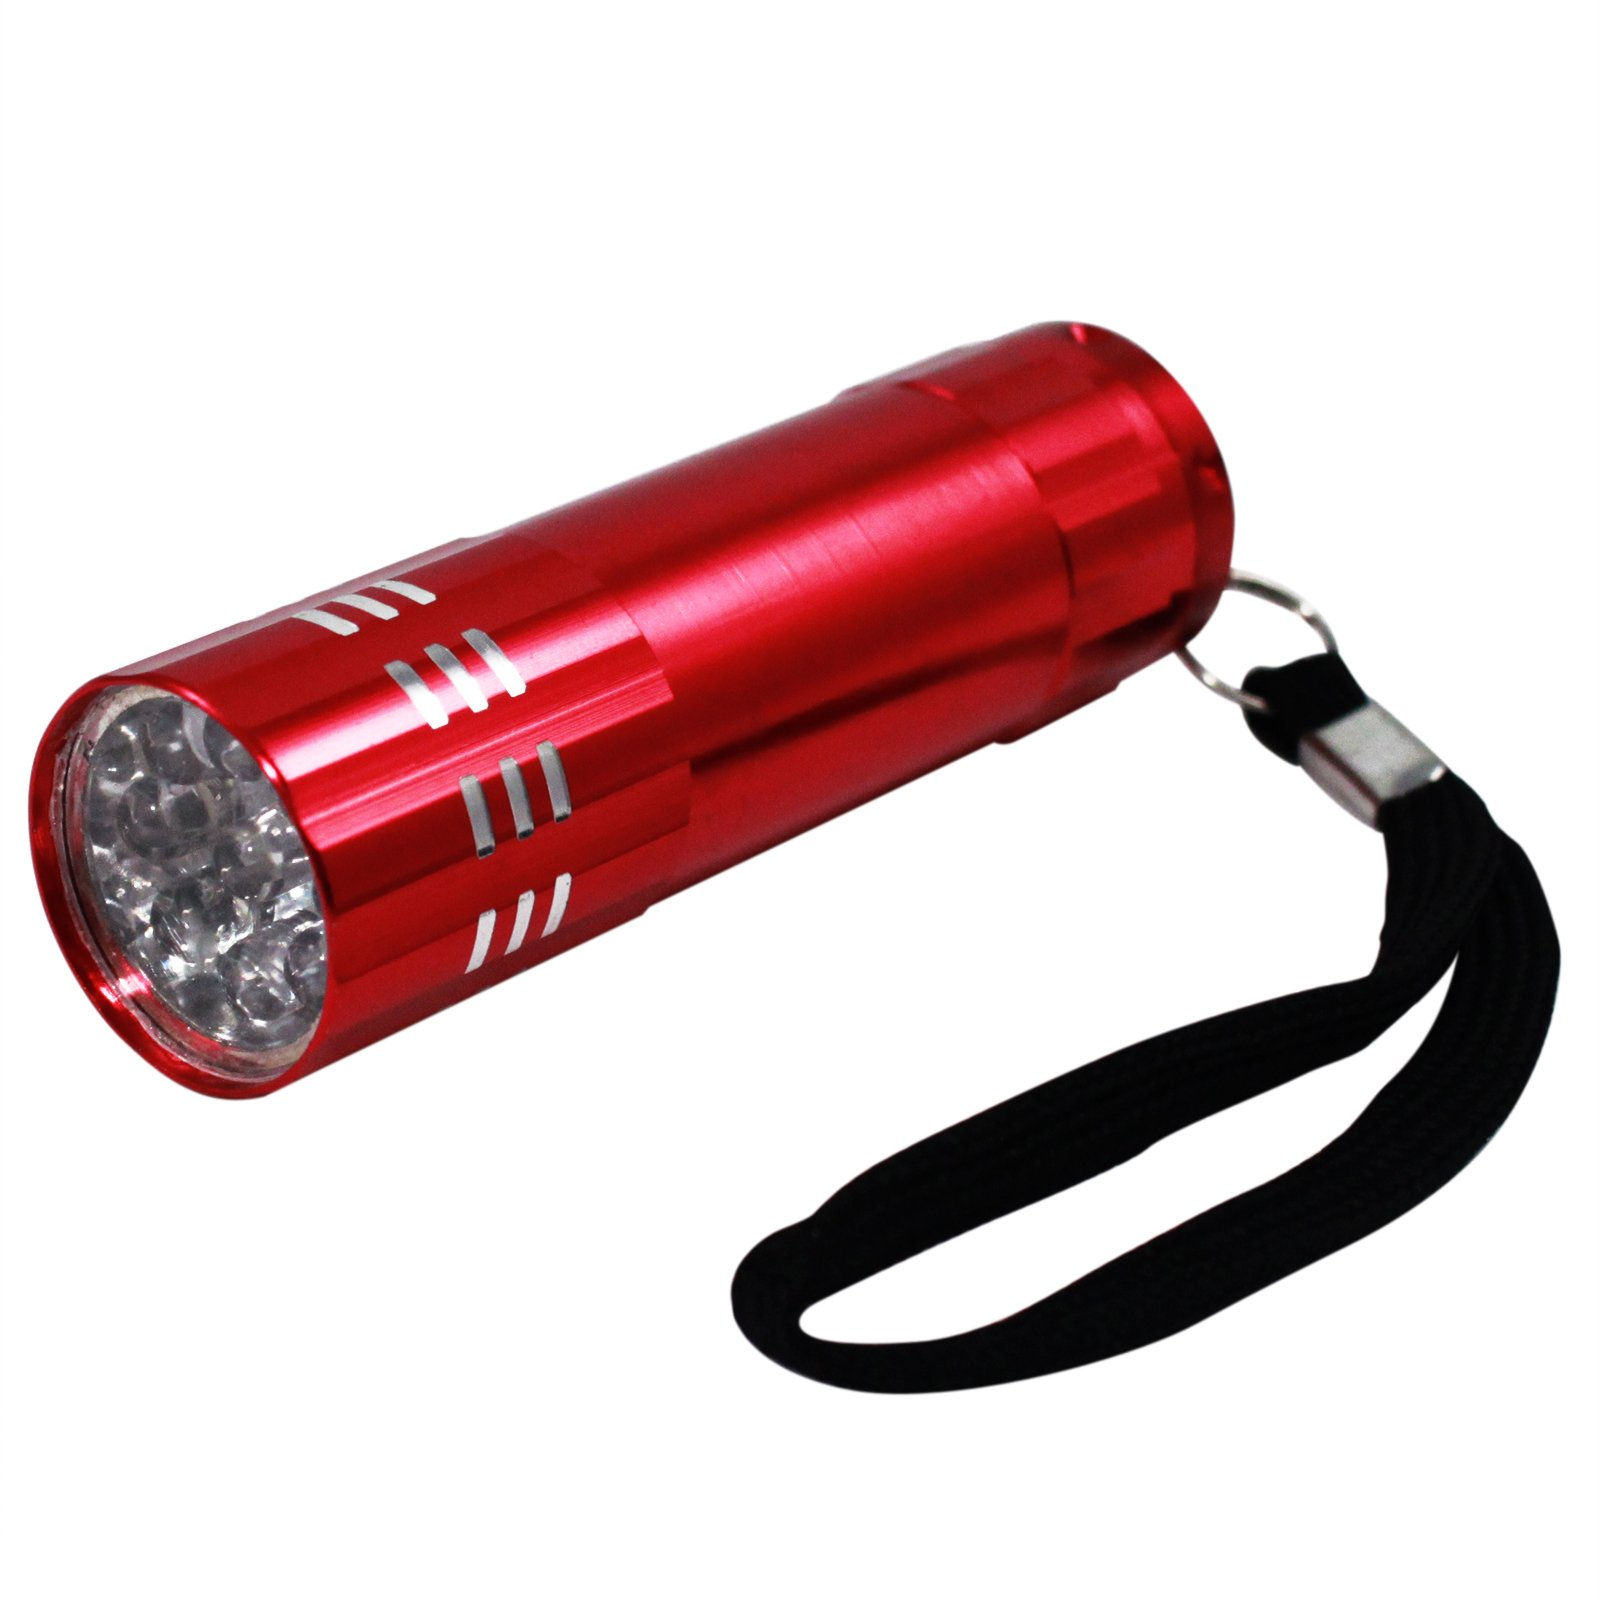 9 LED Super Bright Portable Mini Flashlight with Lanyard (Red)